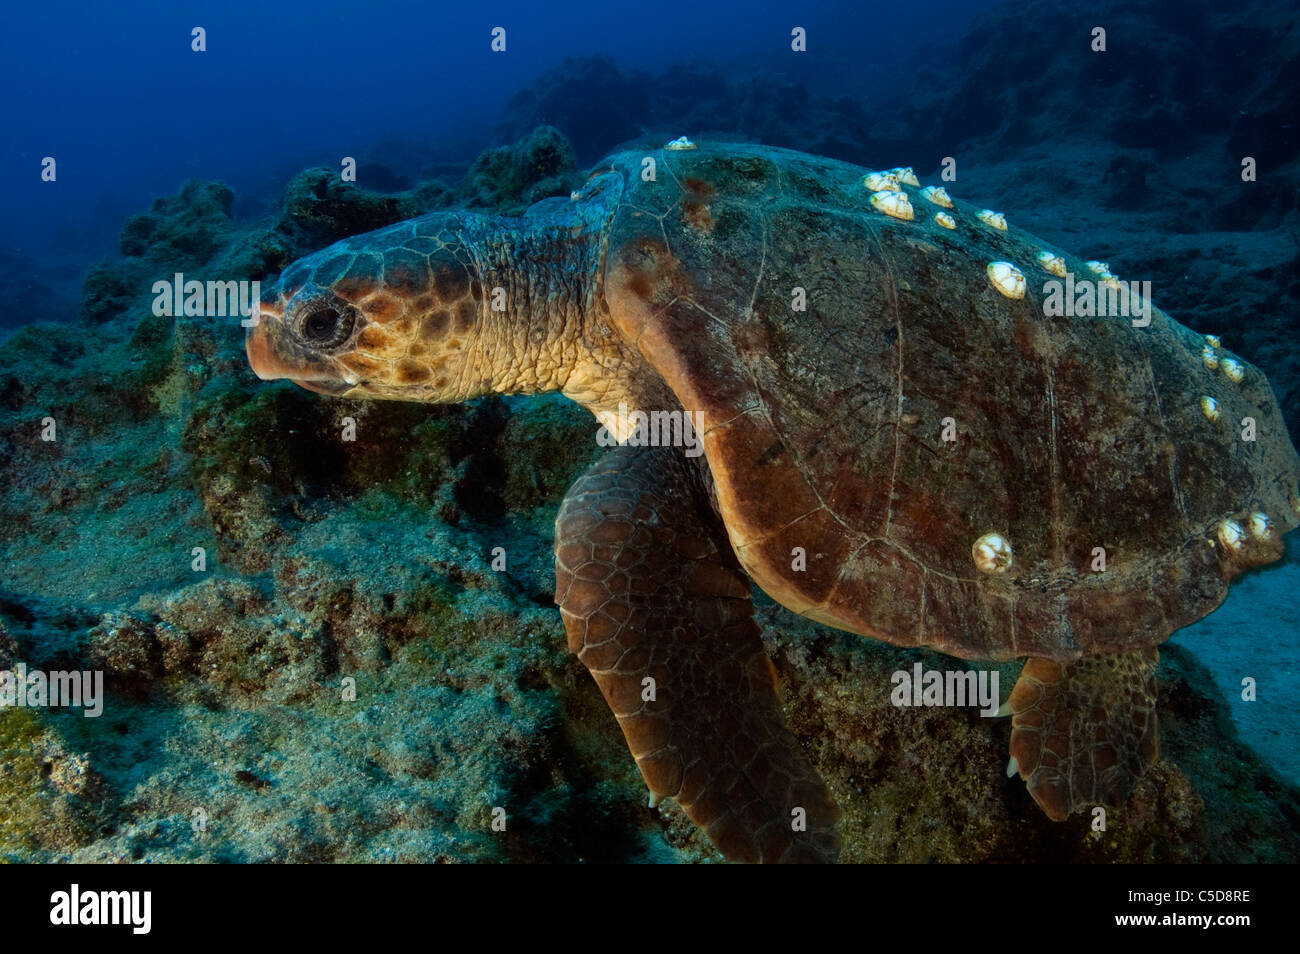 Loggerhead turtle, Caretta caretta, an endangered species in Kas Antalya Turkey. - Stock Image